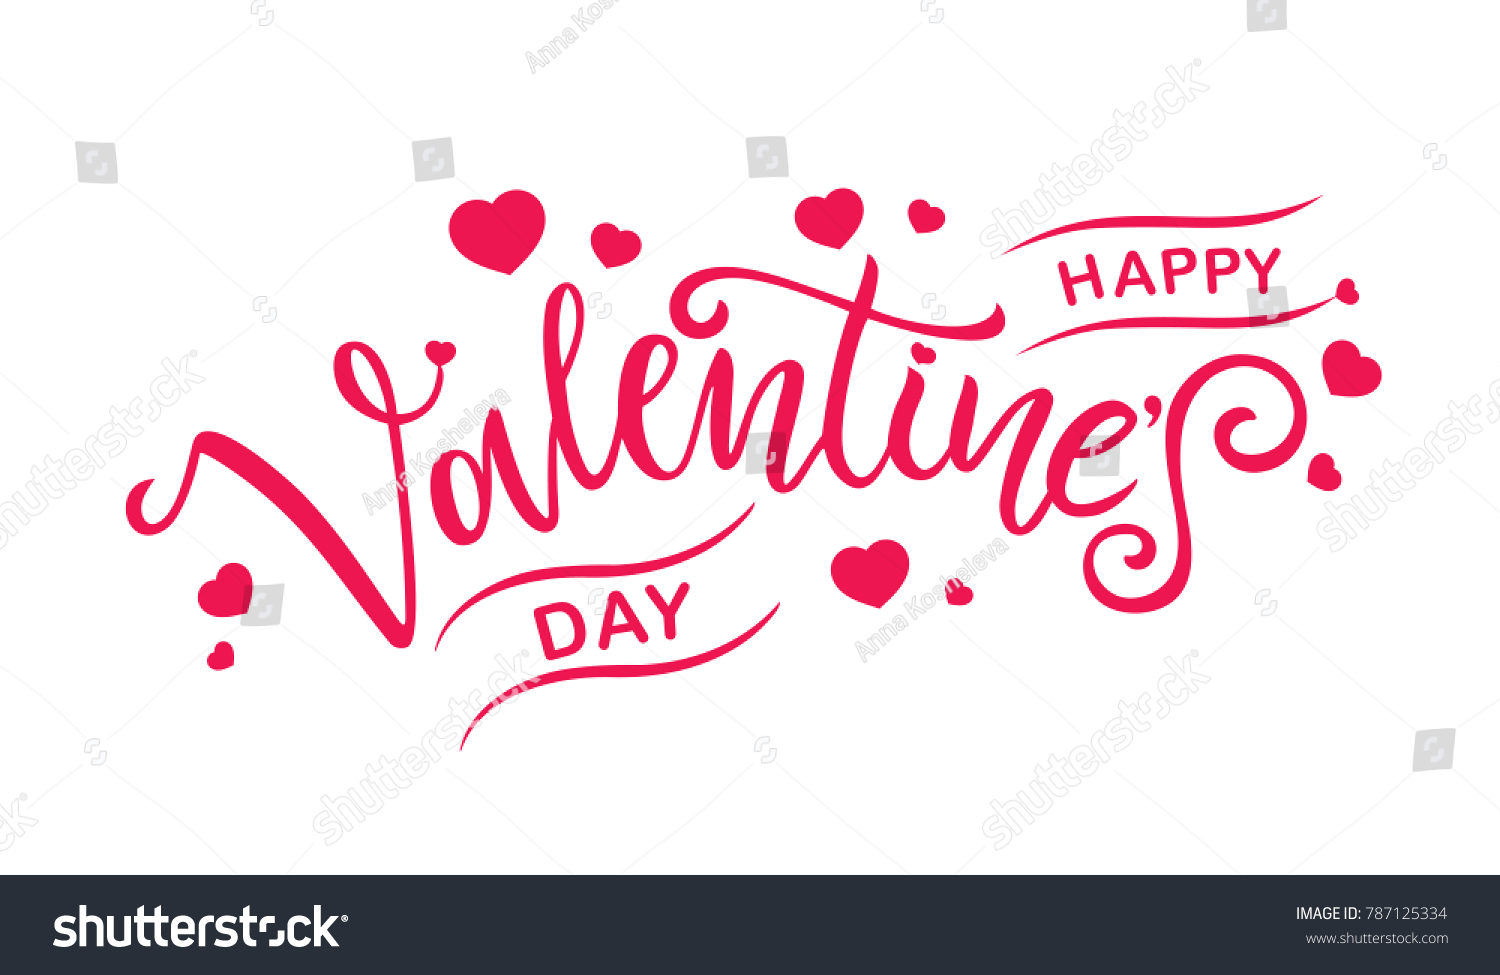 Happy valentines day typography vector design stock vector happy valentines day typography vector design for greeting cards and poster valentines day text on kristyandbryce Choice Image